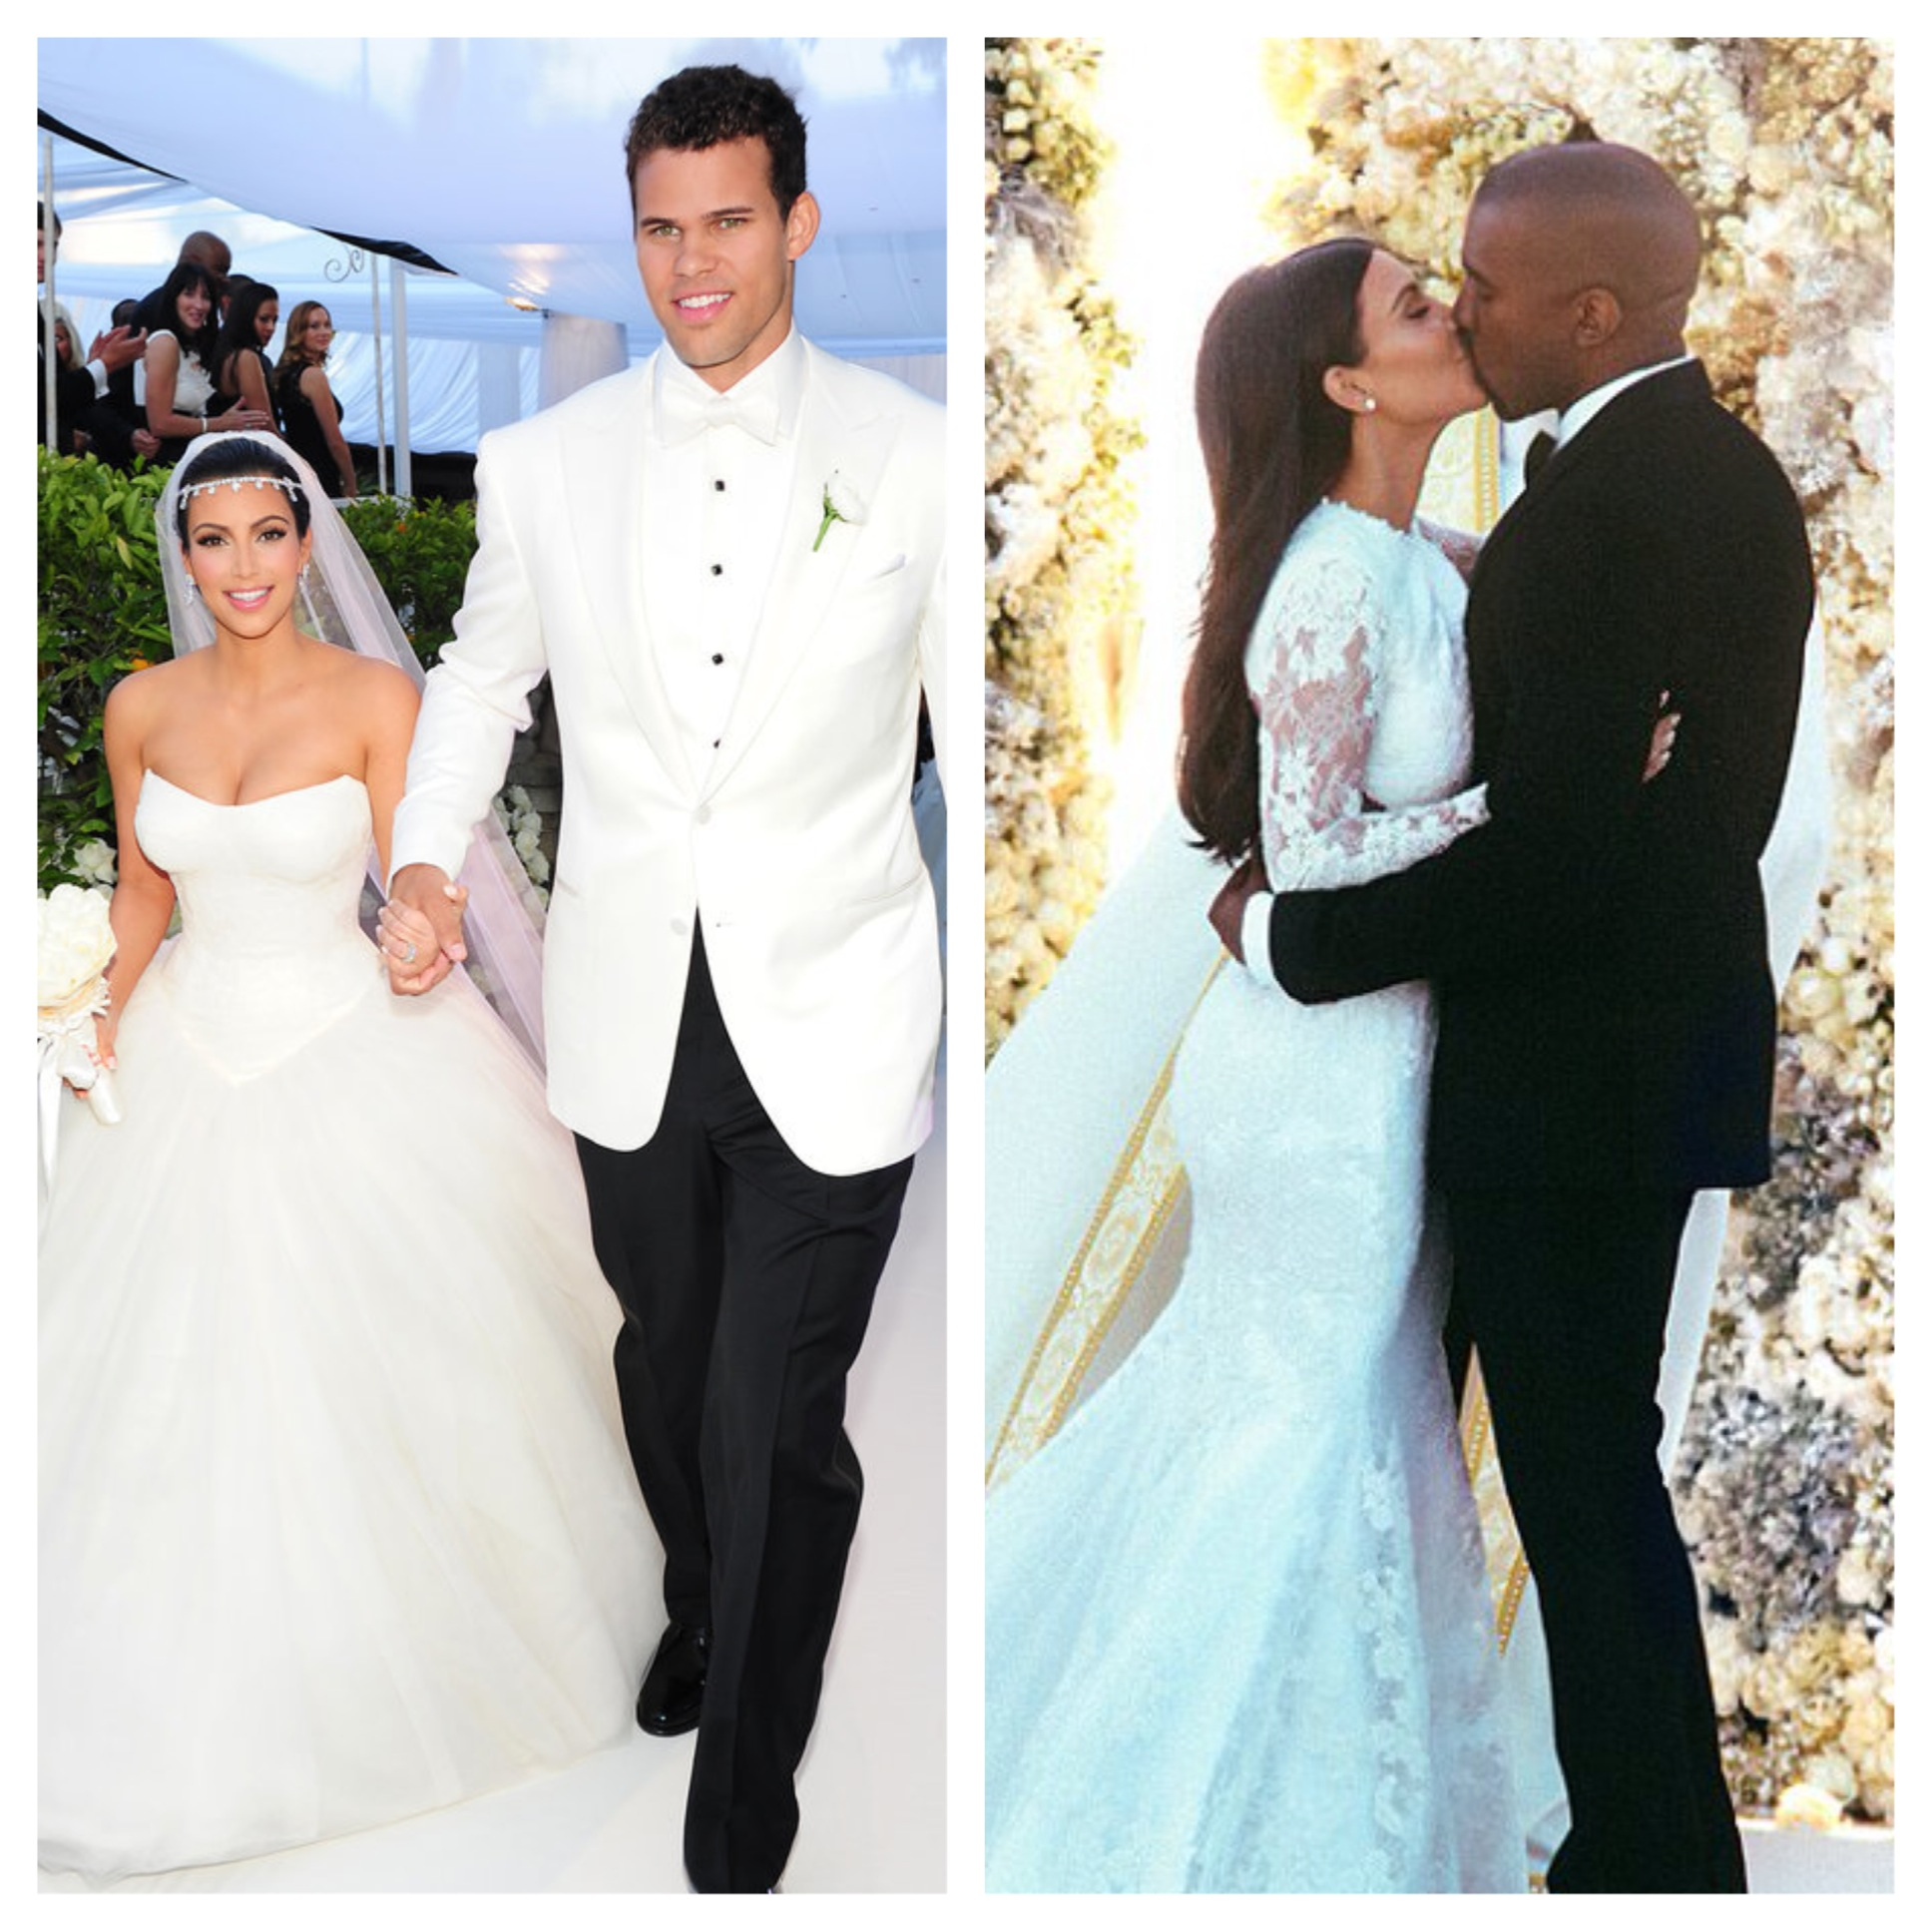 Kimye Married 74 Days And Counting Celeb Connoissare